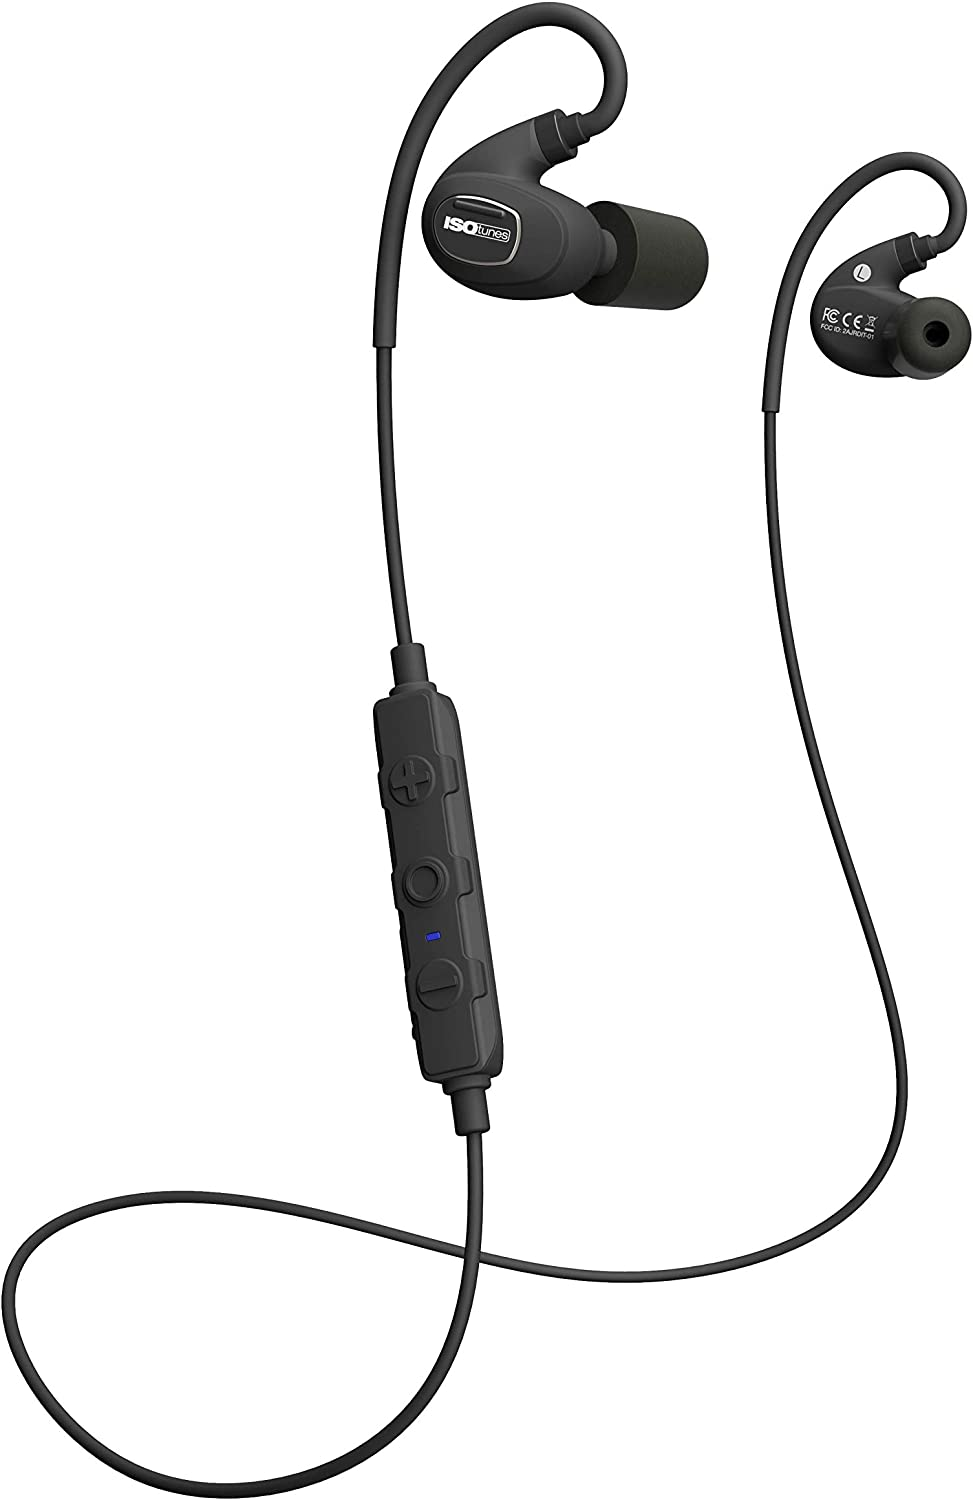 OSHA Compliant Bluetooth Hearing Protector Noise Cancelling Mic All Black 8 Hour Battery 27 dB Noise Reduction Rating ISOtunes Xtra Bluetooth Earplug Headphones